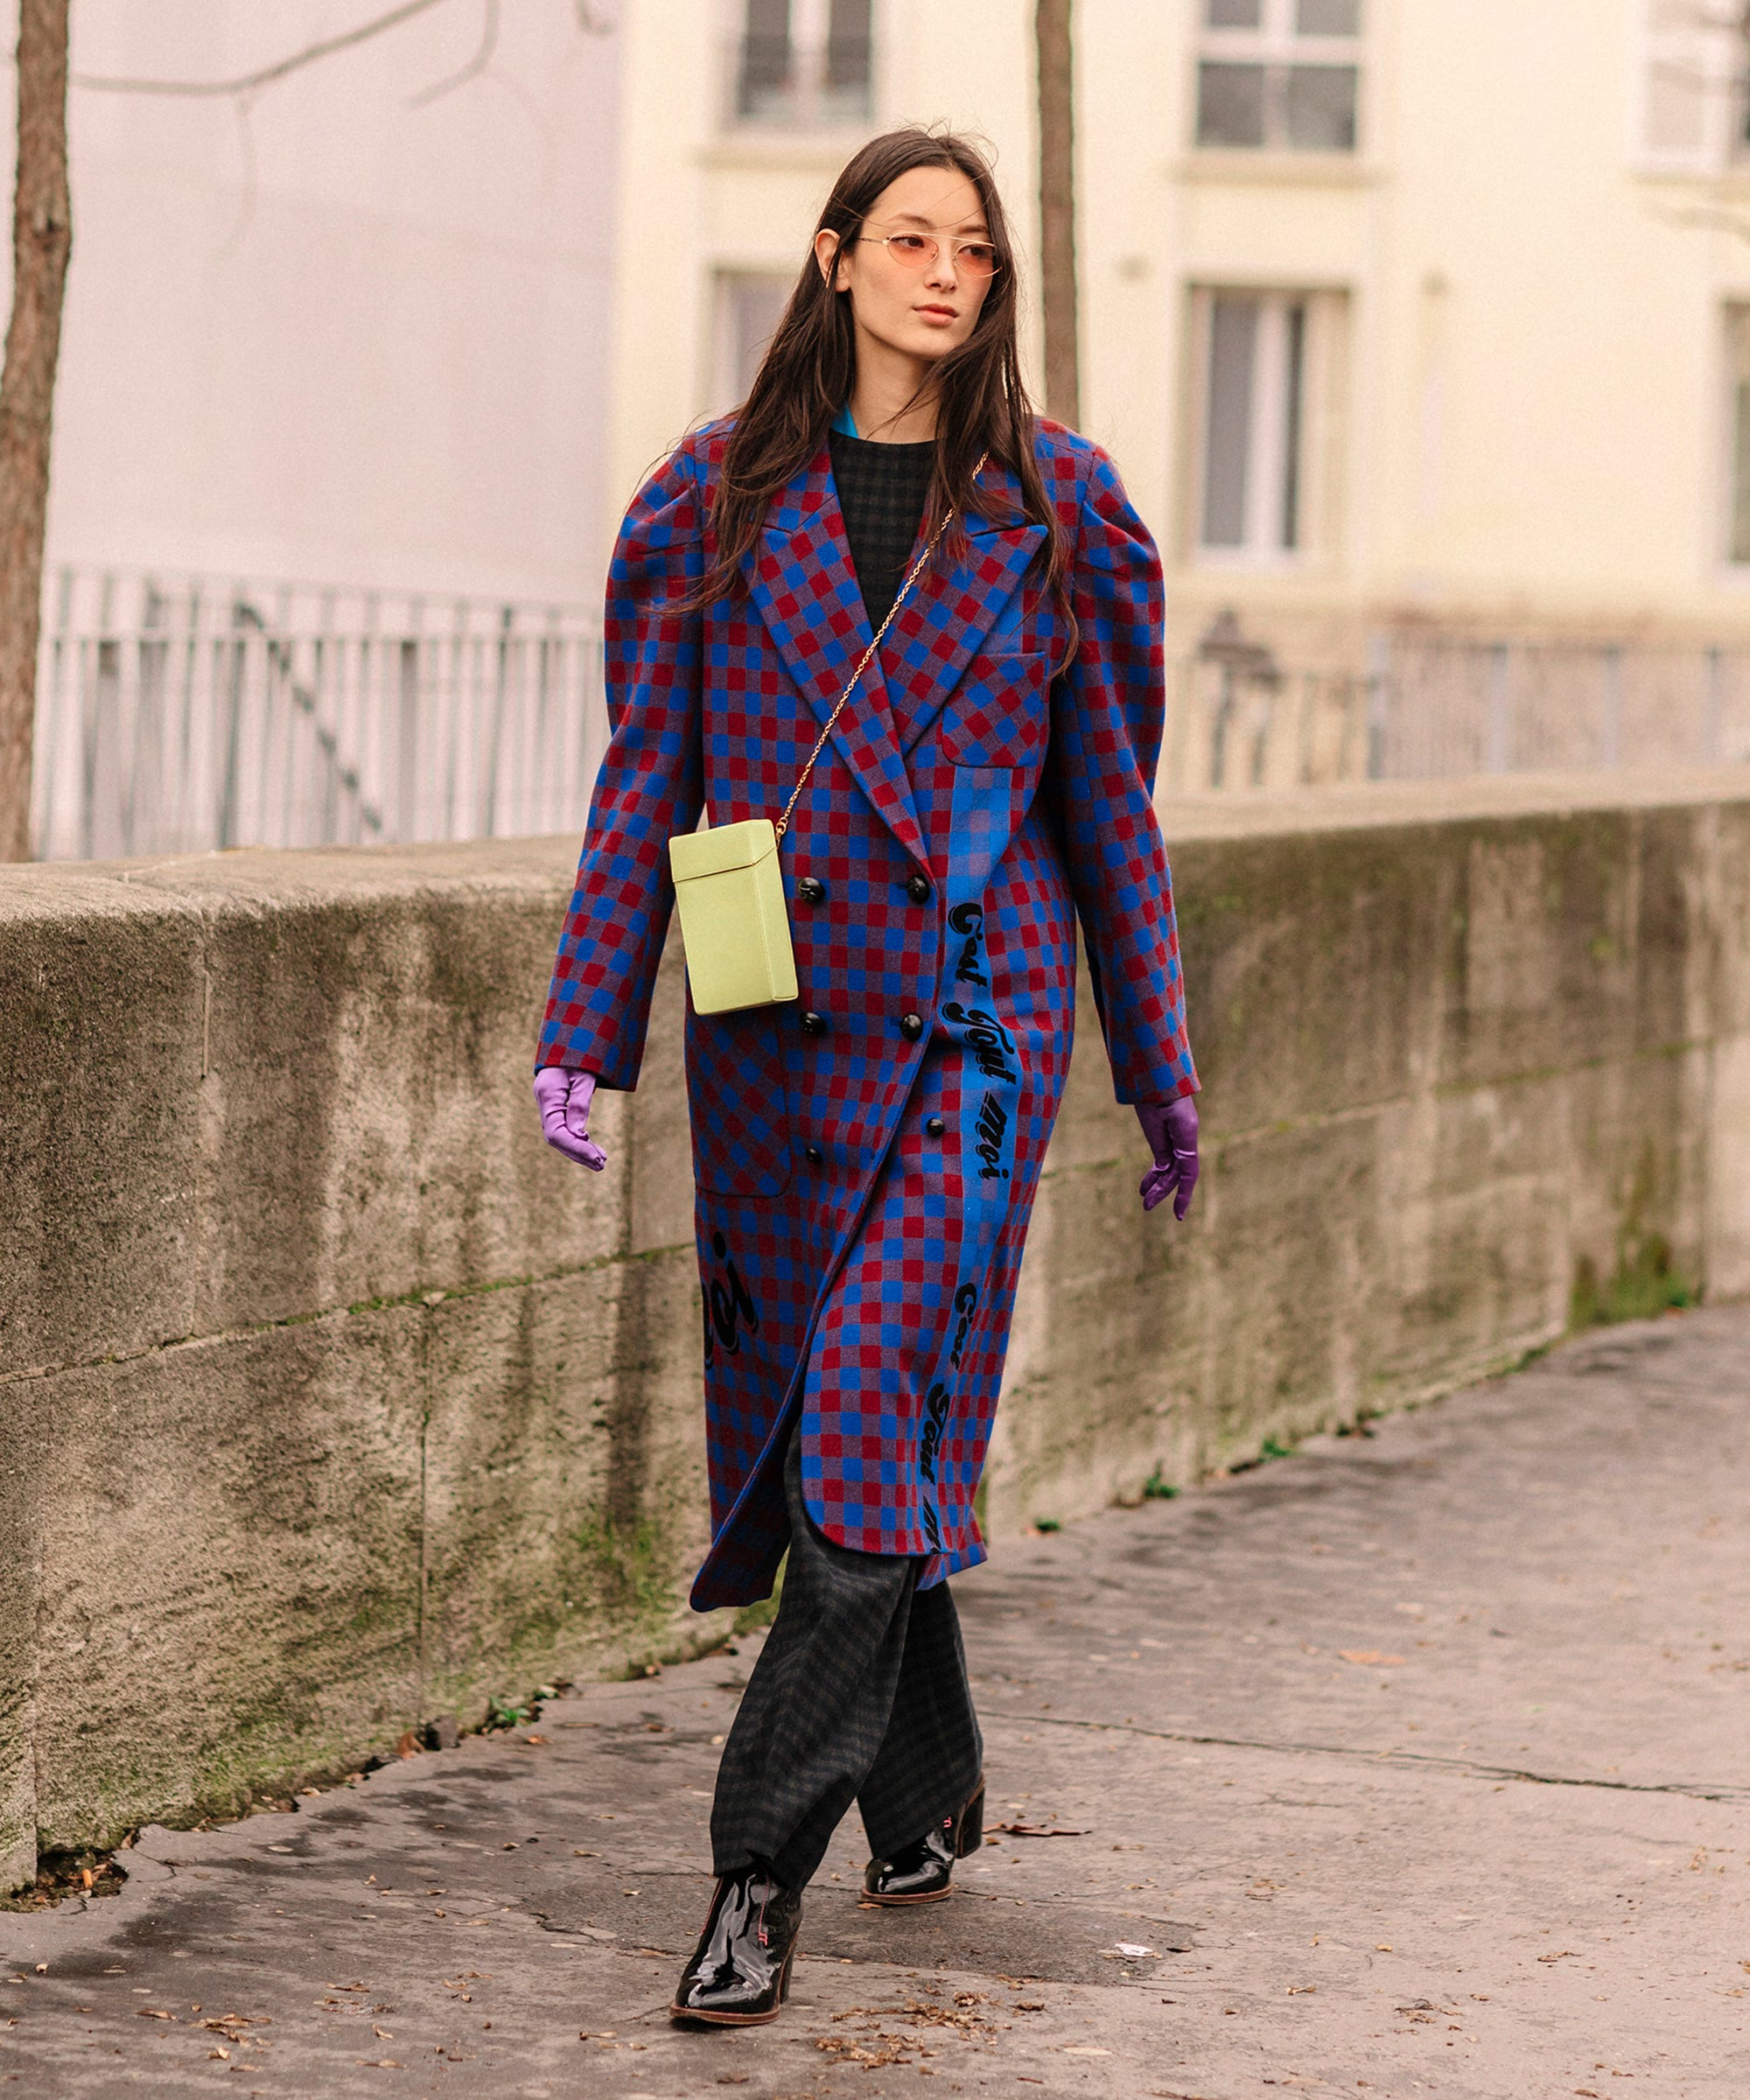 62bb0edfaa3c The Street Style At Paris Fashion Week Is Making Us Rethink Our Closet